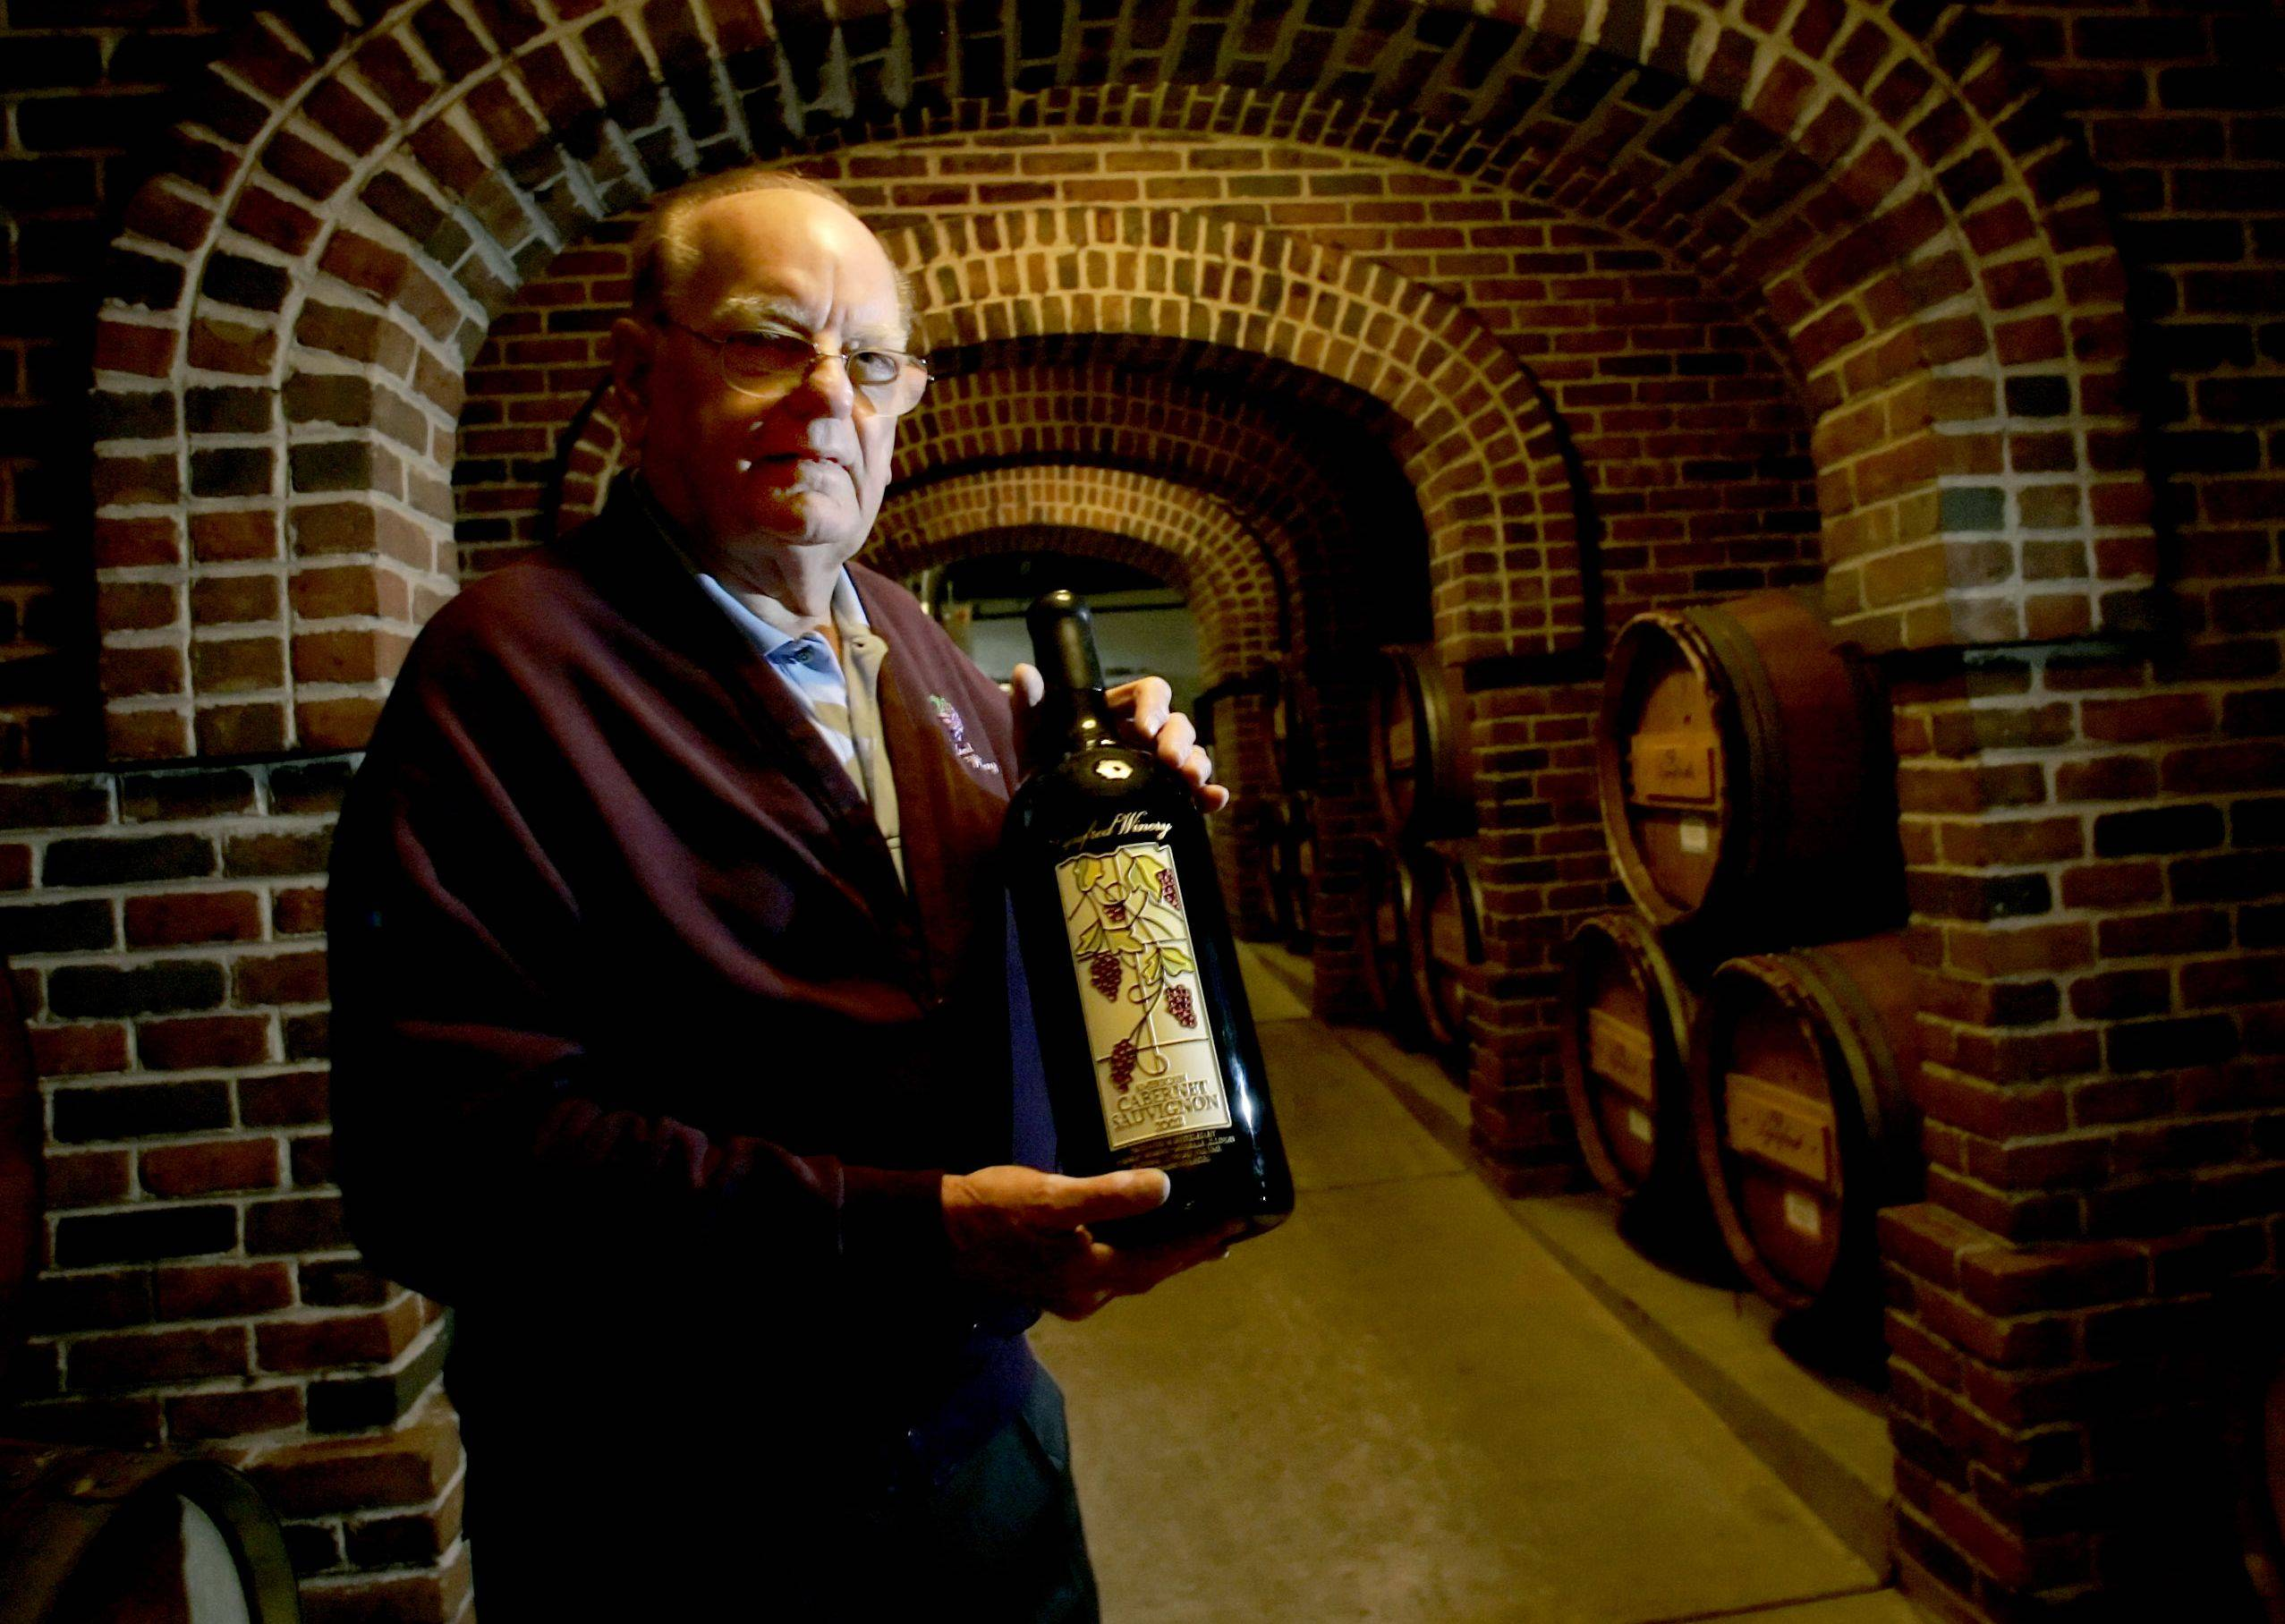 Fred Koehler, co-founder of Lynfred Winery in Roselle, died at age 83 on Saturday.